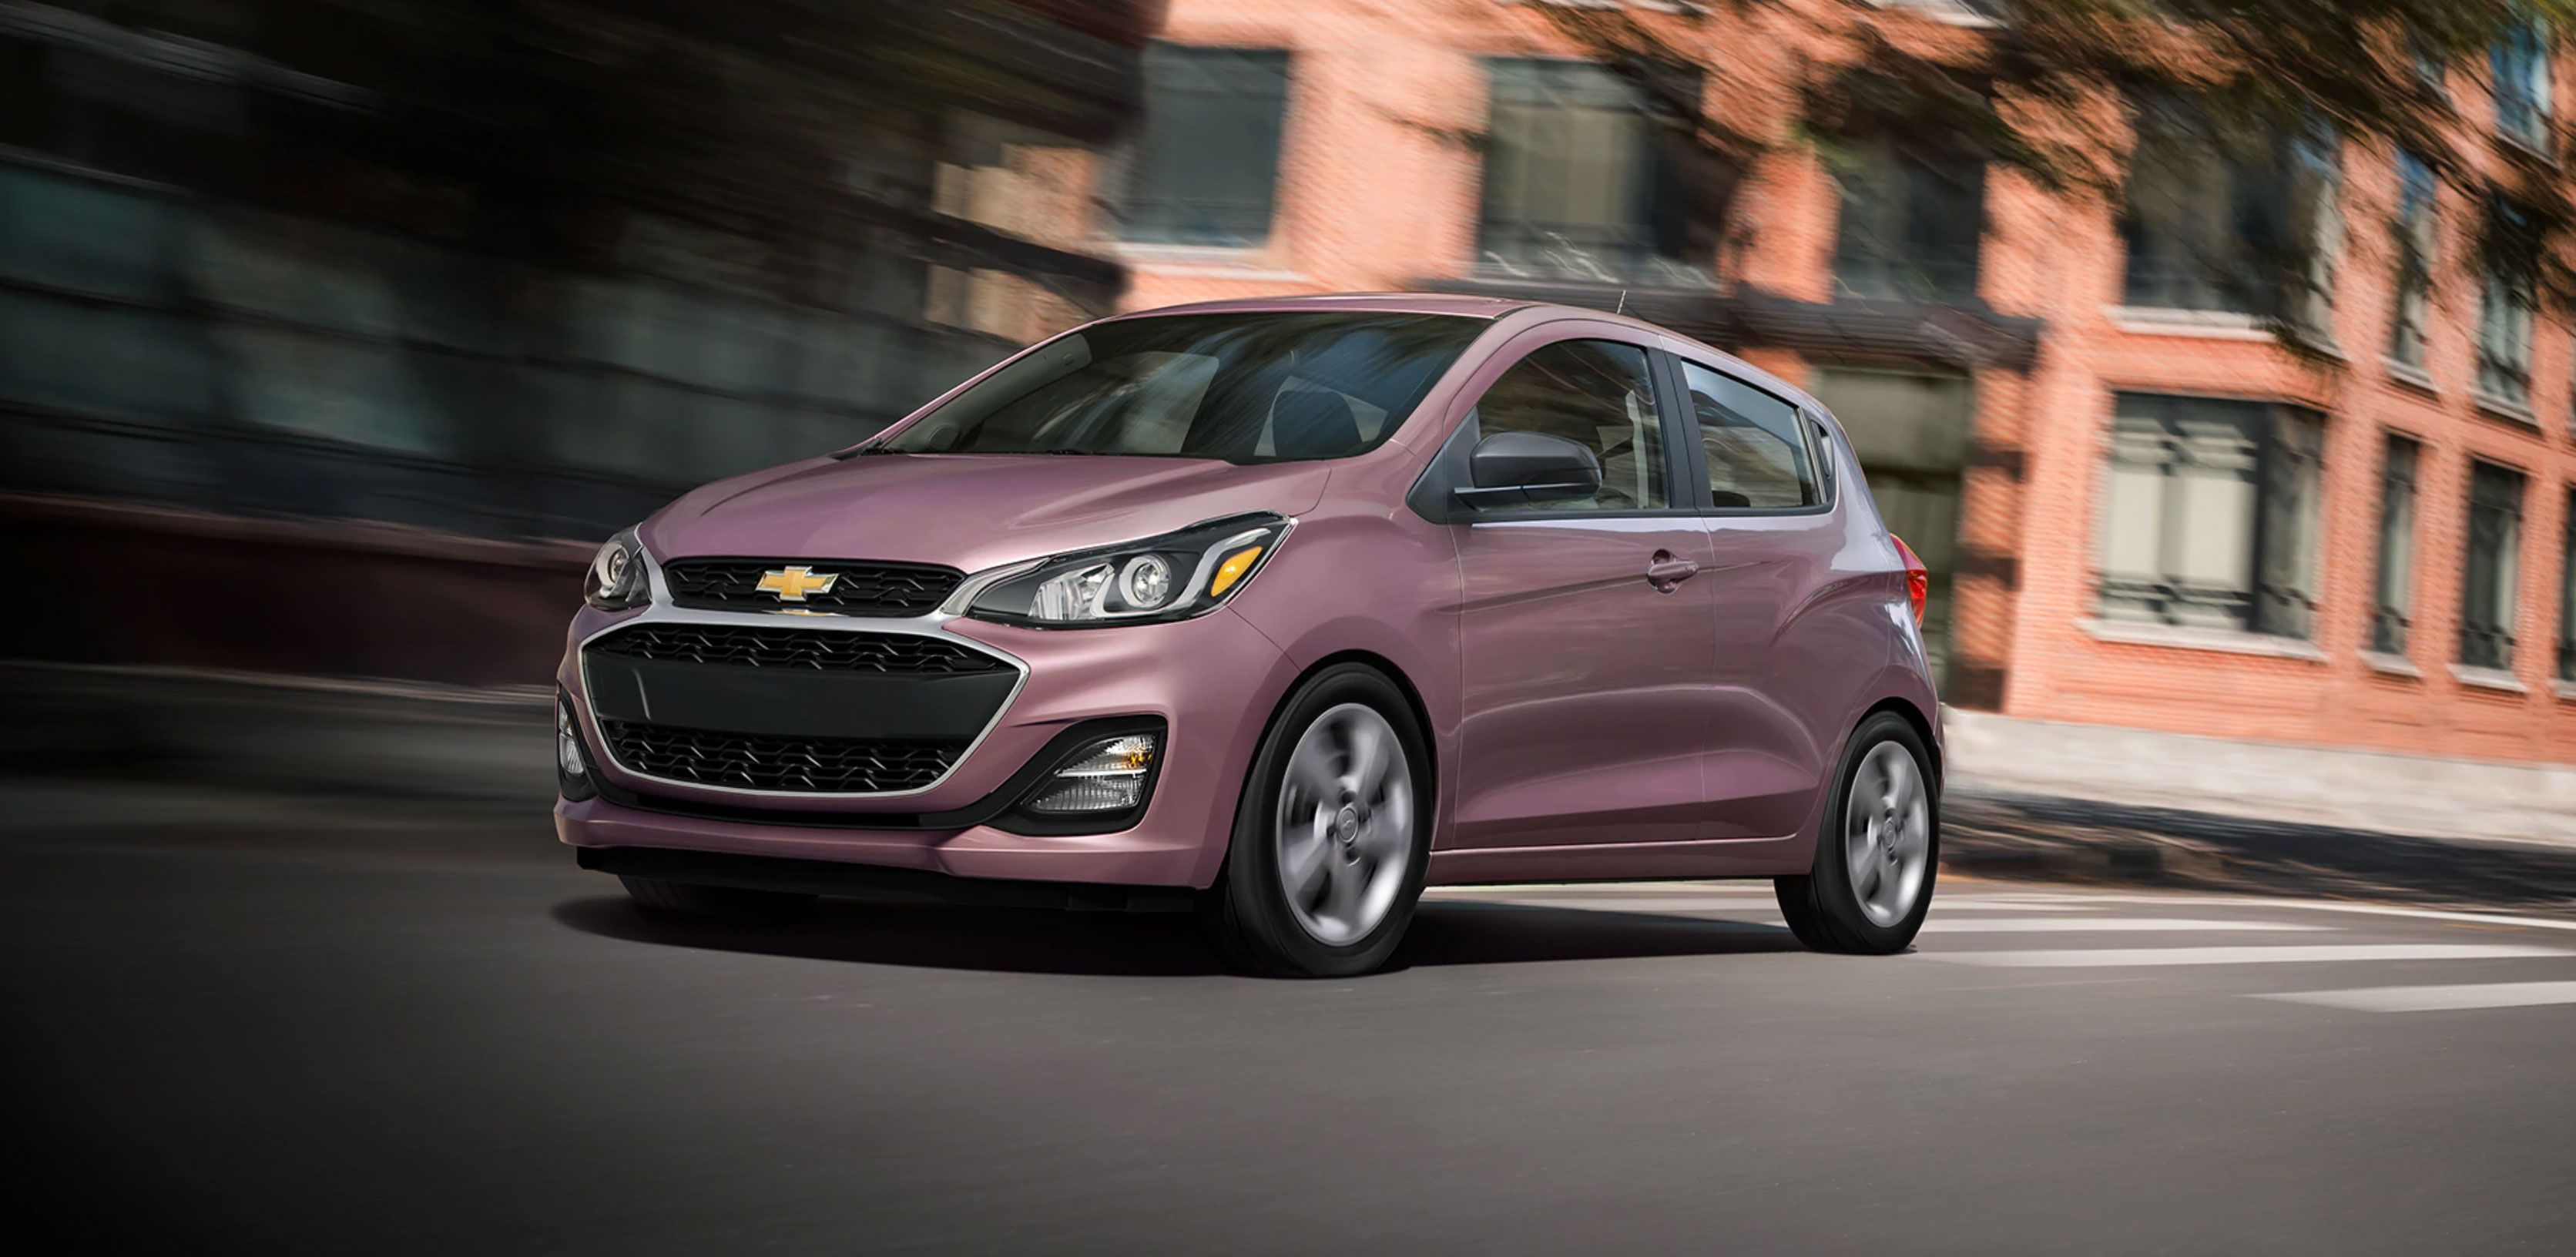 2020 Chevrolet Spark Redesign and Concept